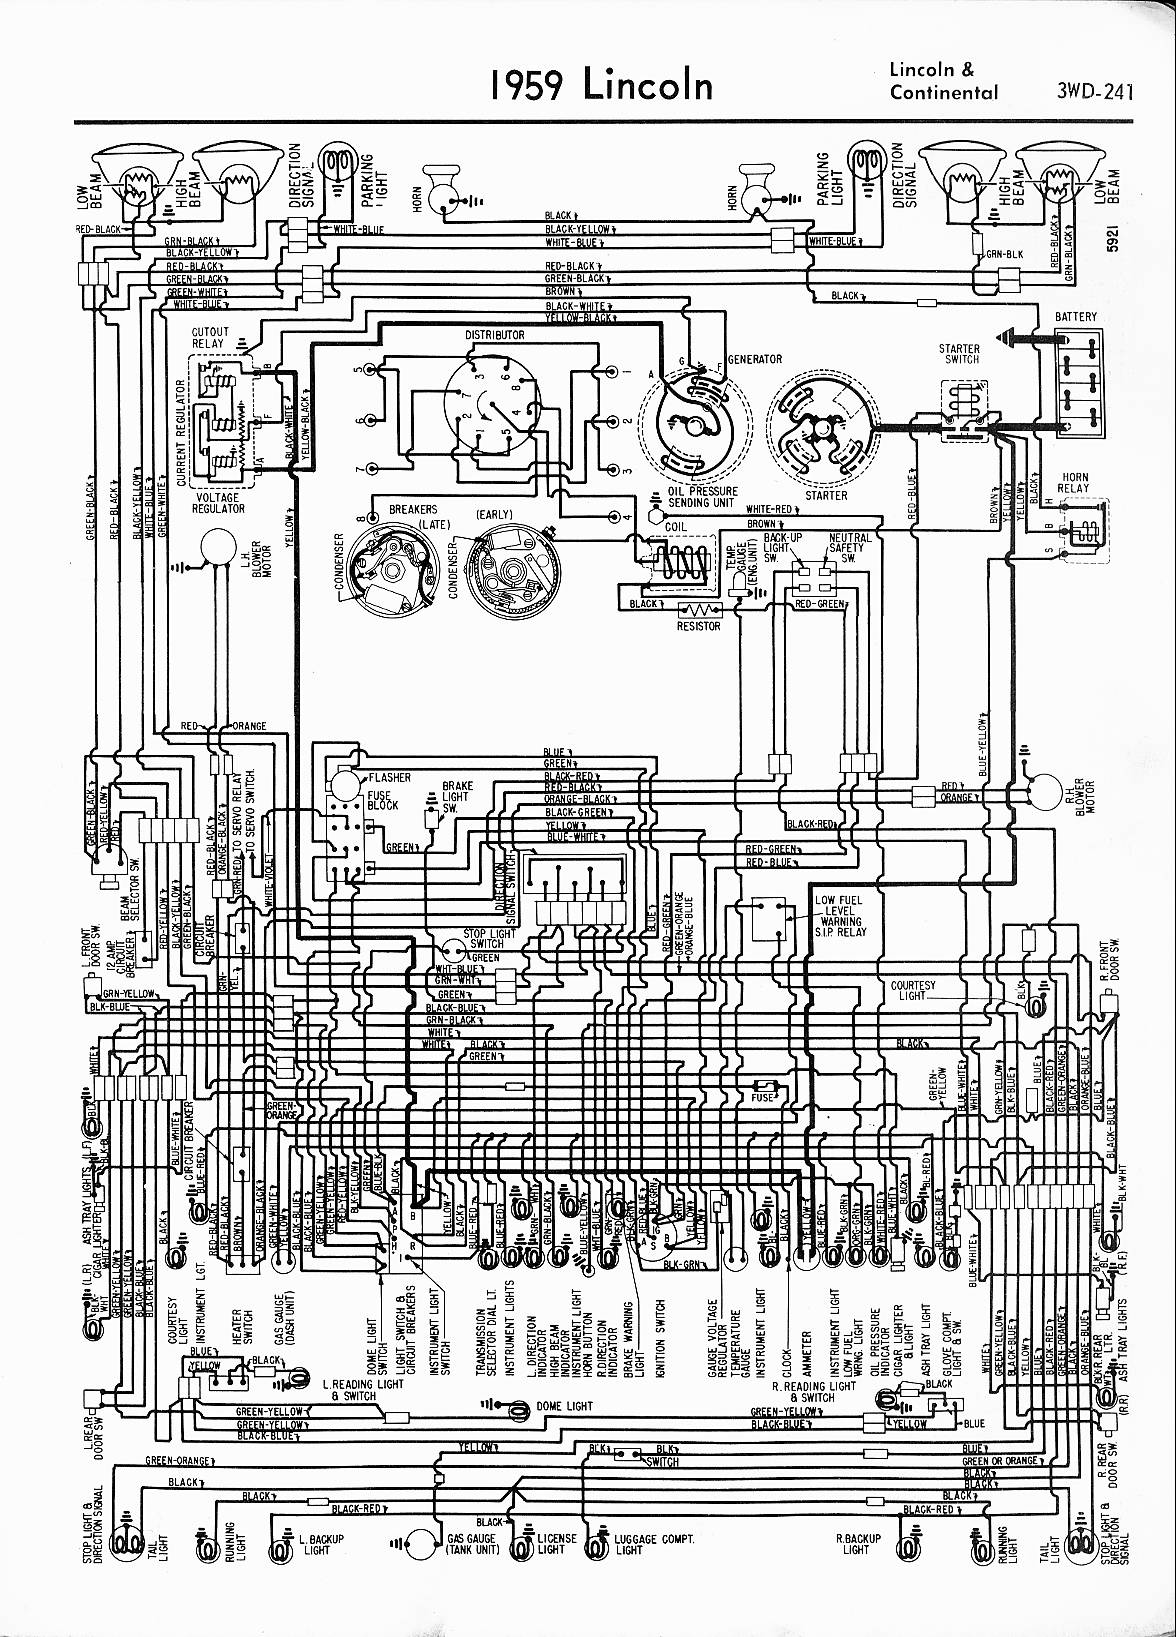 MWireLin_Lin57_z3wd 241z_004 lincoln wiring diagrams 1957 1965 Chevy Wiring Harness Diagram at bayanpartner.co